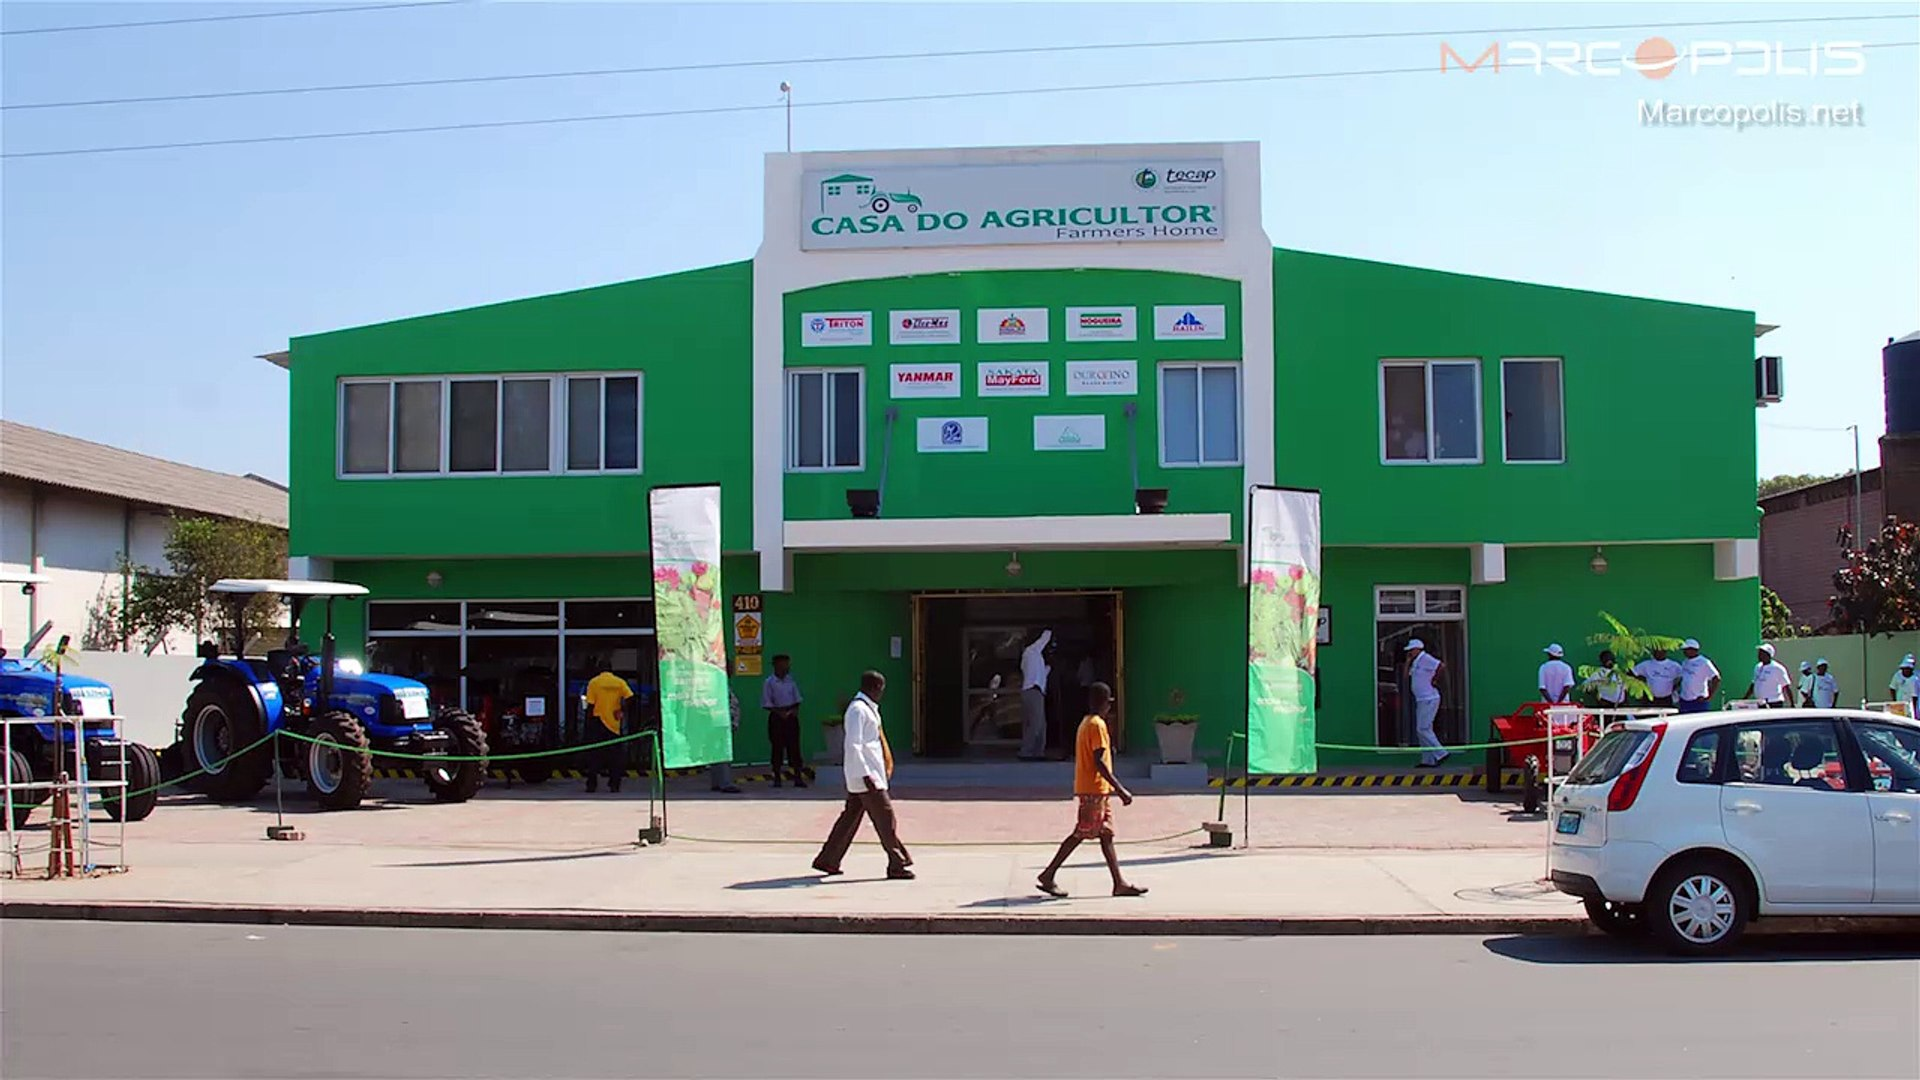 Casa do Agricultor: A Franchise Store Offering Technical Assistance and Agricultural Products